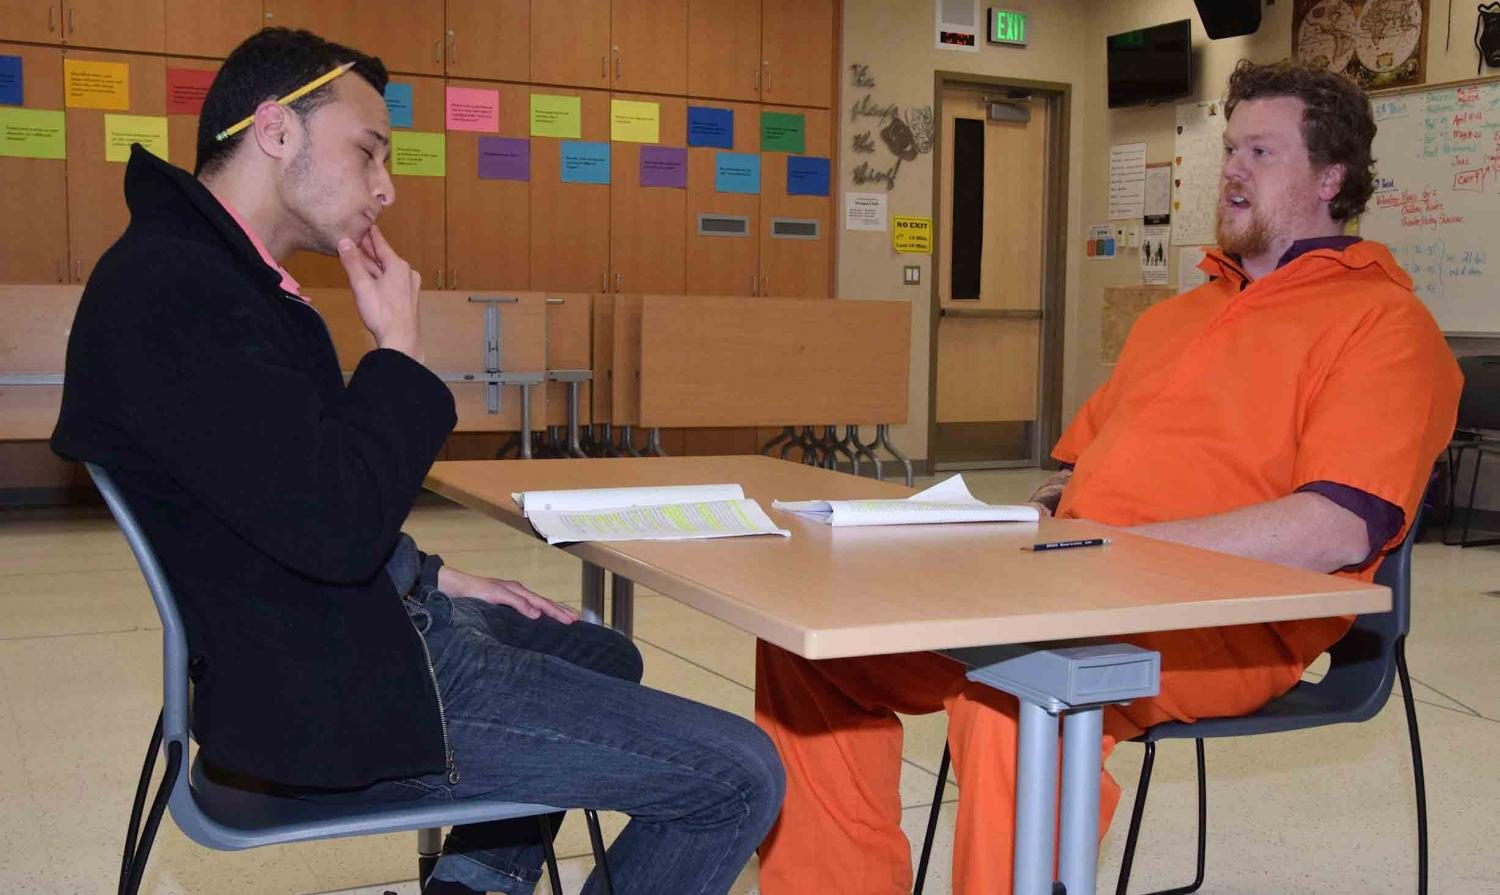 Olene Togialu (Greg Pierotti) interviews Chris Telford who plays convict Aaron McKinney in the school spring play.